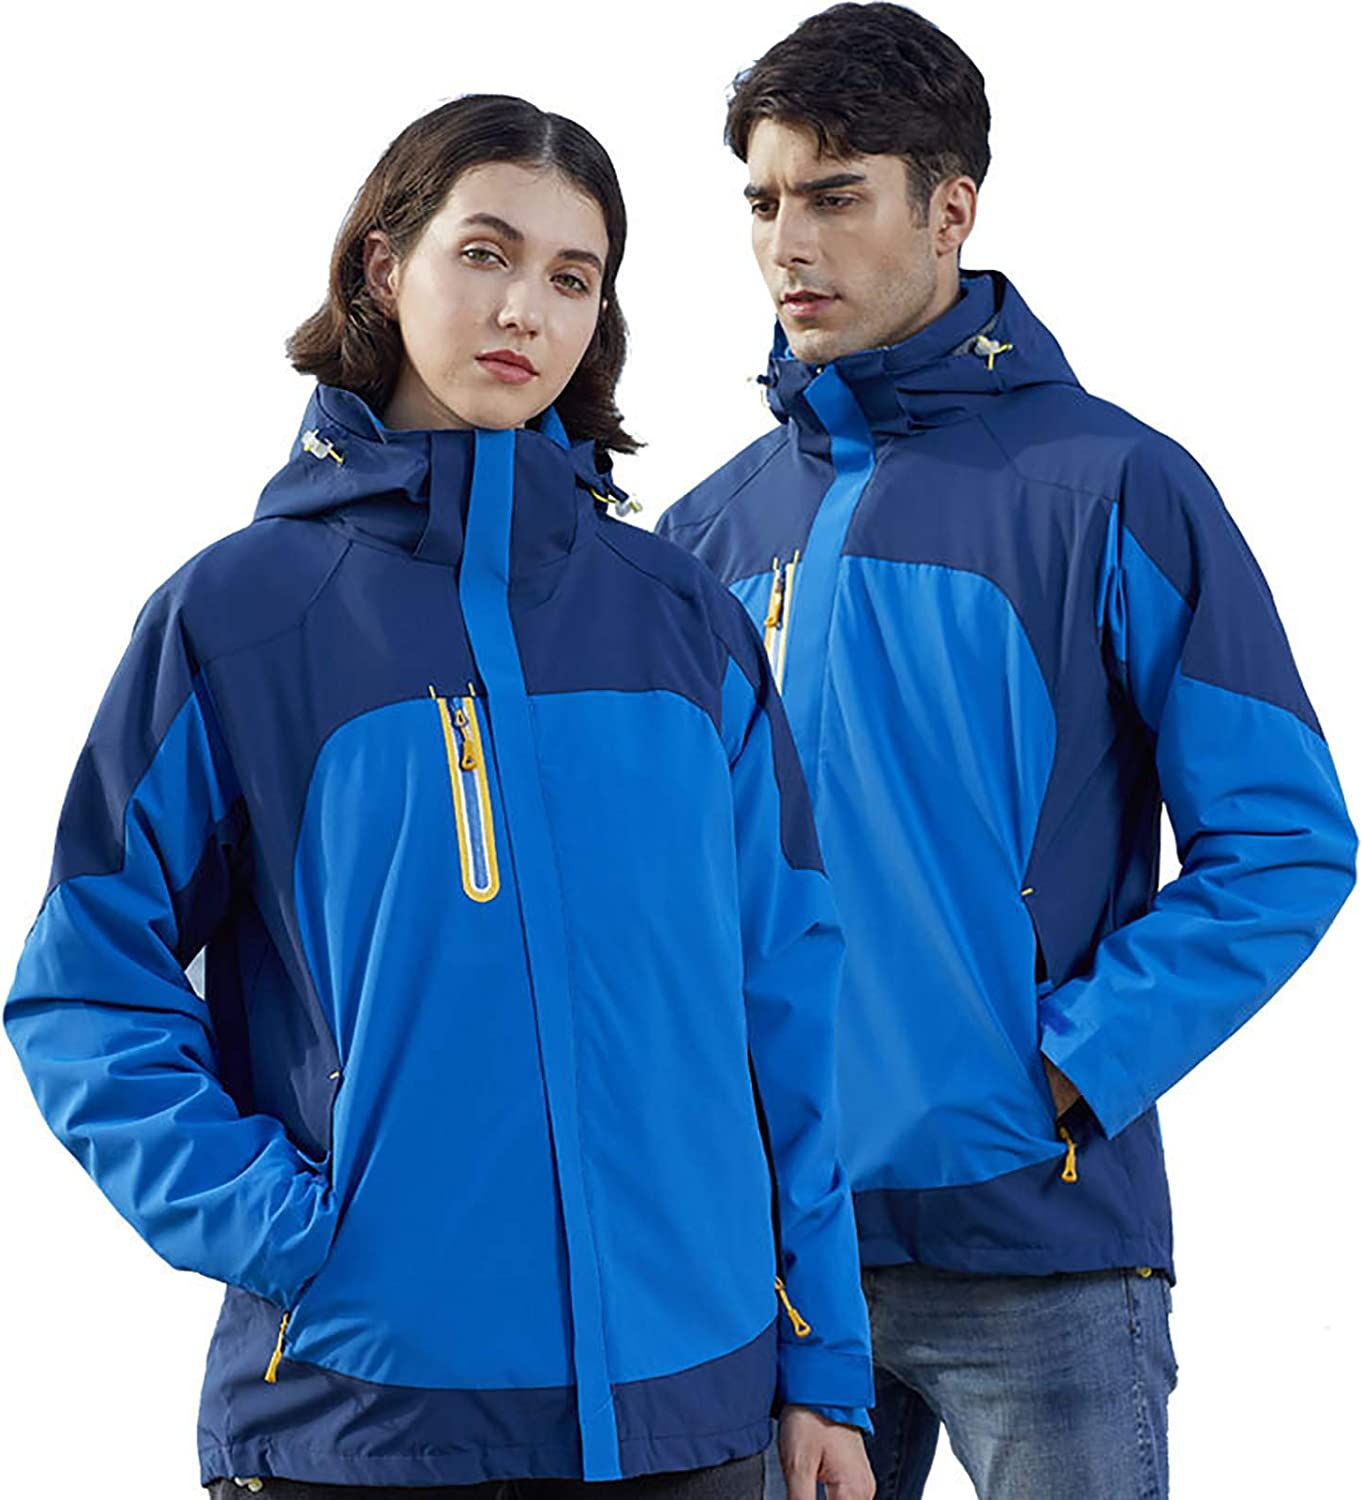 Jackets for Unisex, Warm Softshell Fleece Liner, Detachable Hooded Windproof And Waterproof Outerwear